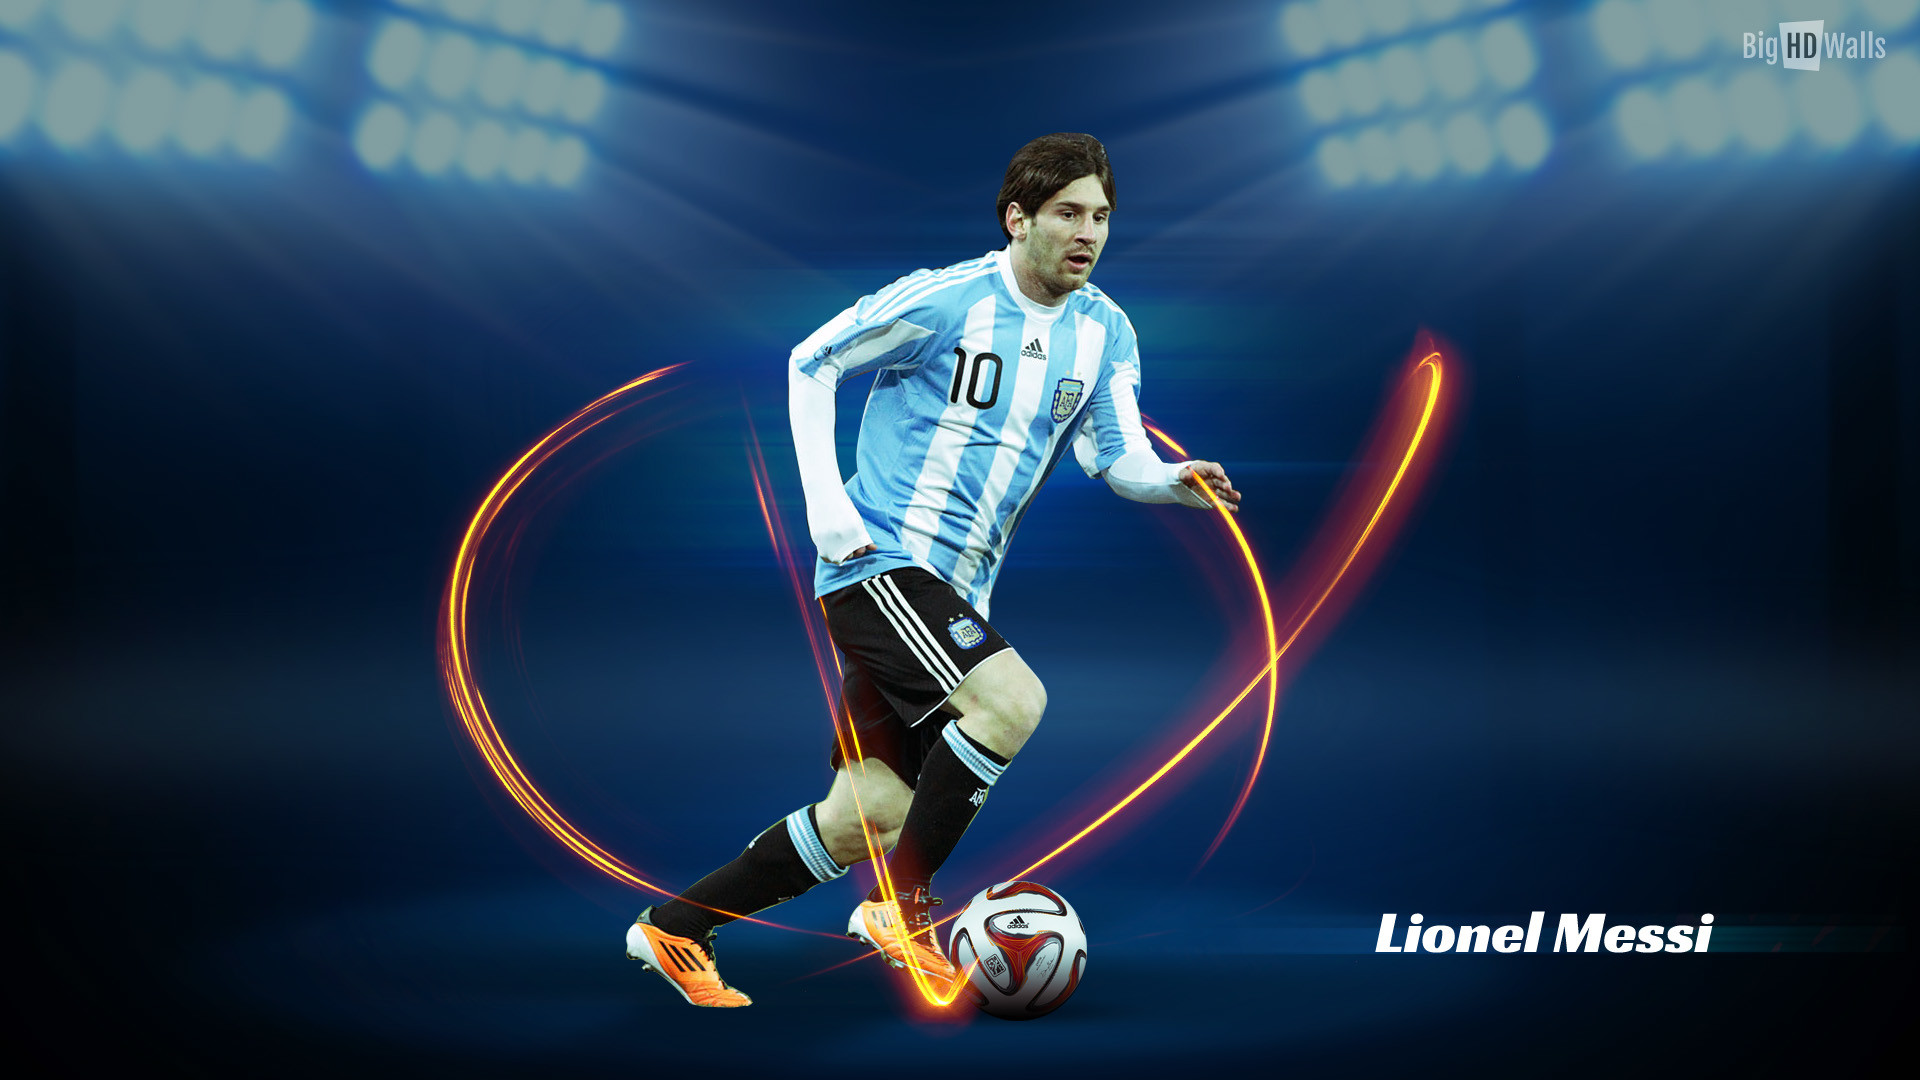 Lionel Messi Hd Wallpapers 2018 80 Images